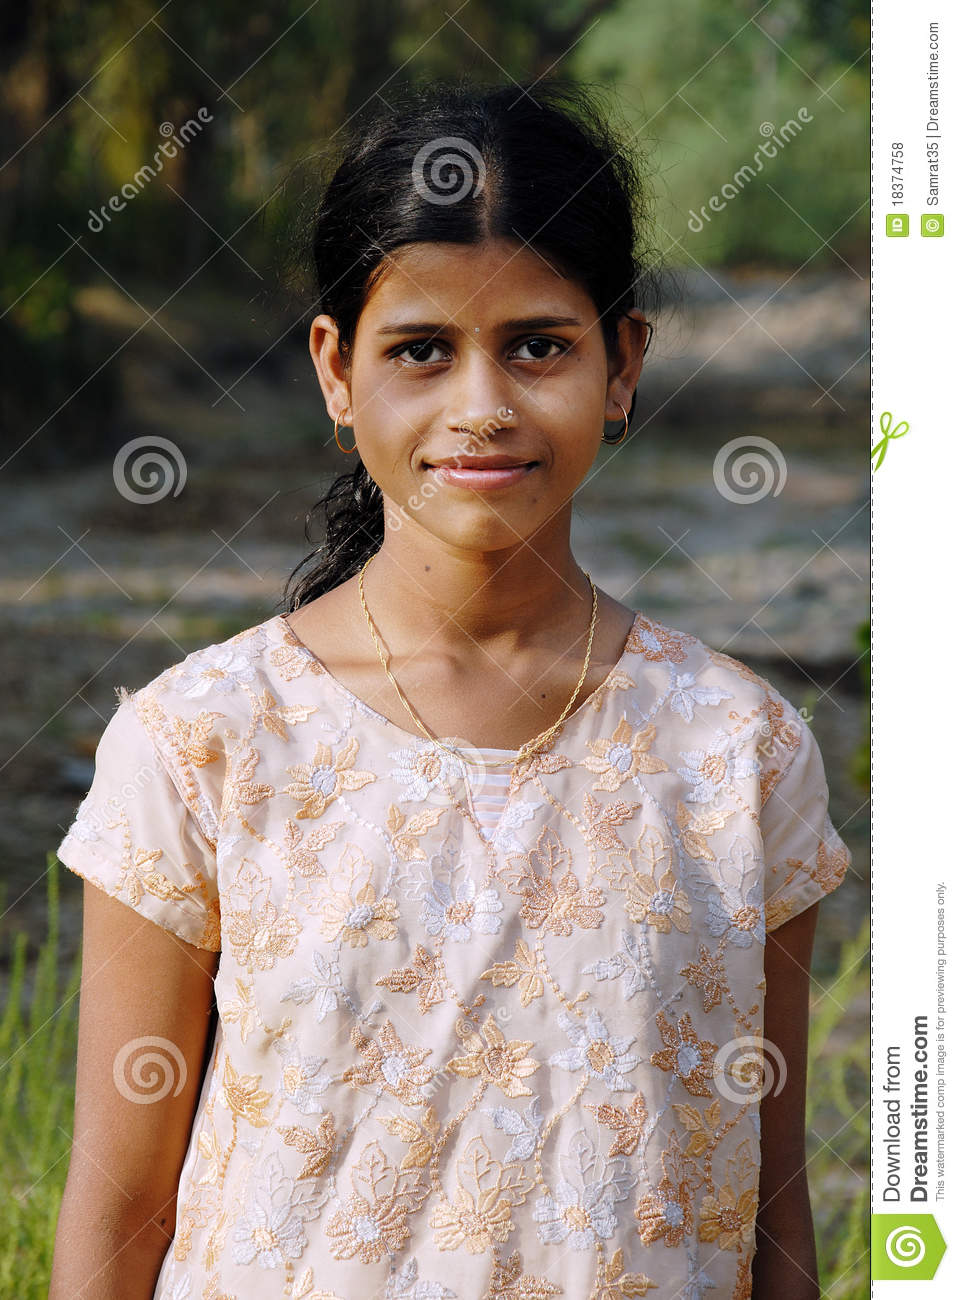 Indian Girl Wallpaper Free Download Adolescents Girl In Rural India Editorial Stock Photo